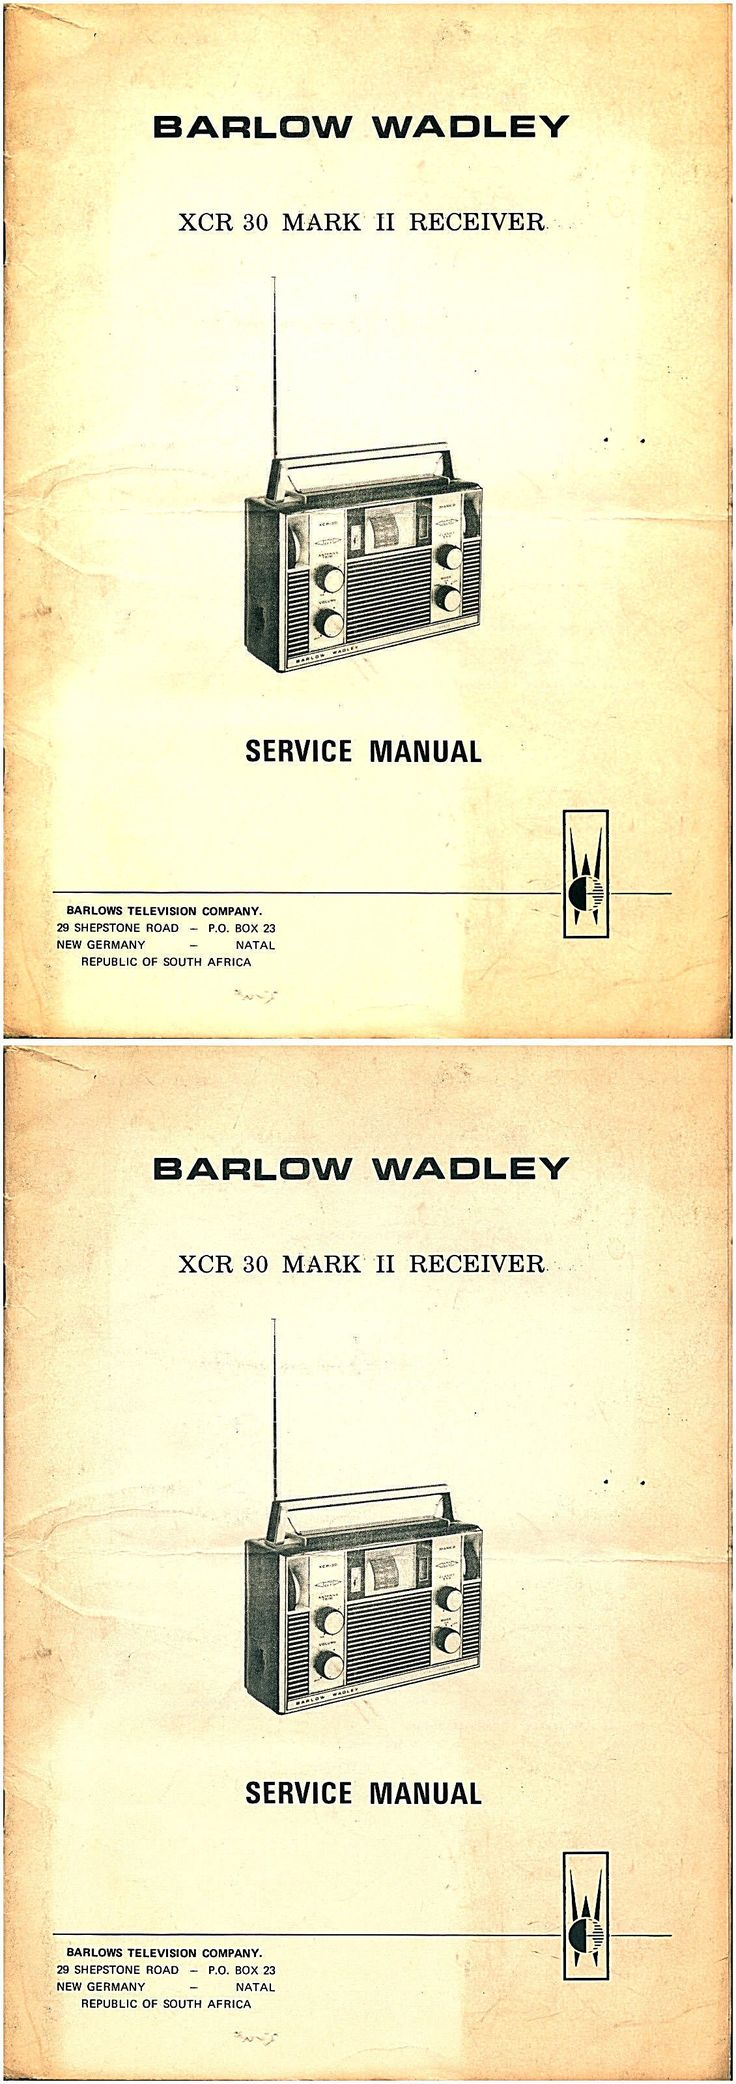 Manuals and resources service manual barlow wadley xcr 30 mark ii sw receiver complete repair